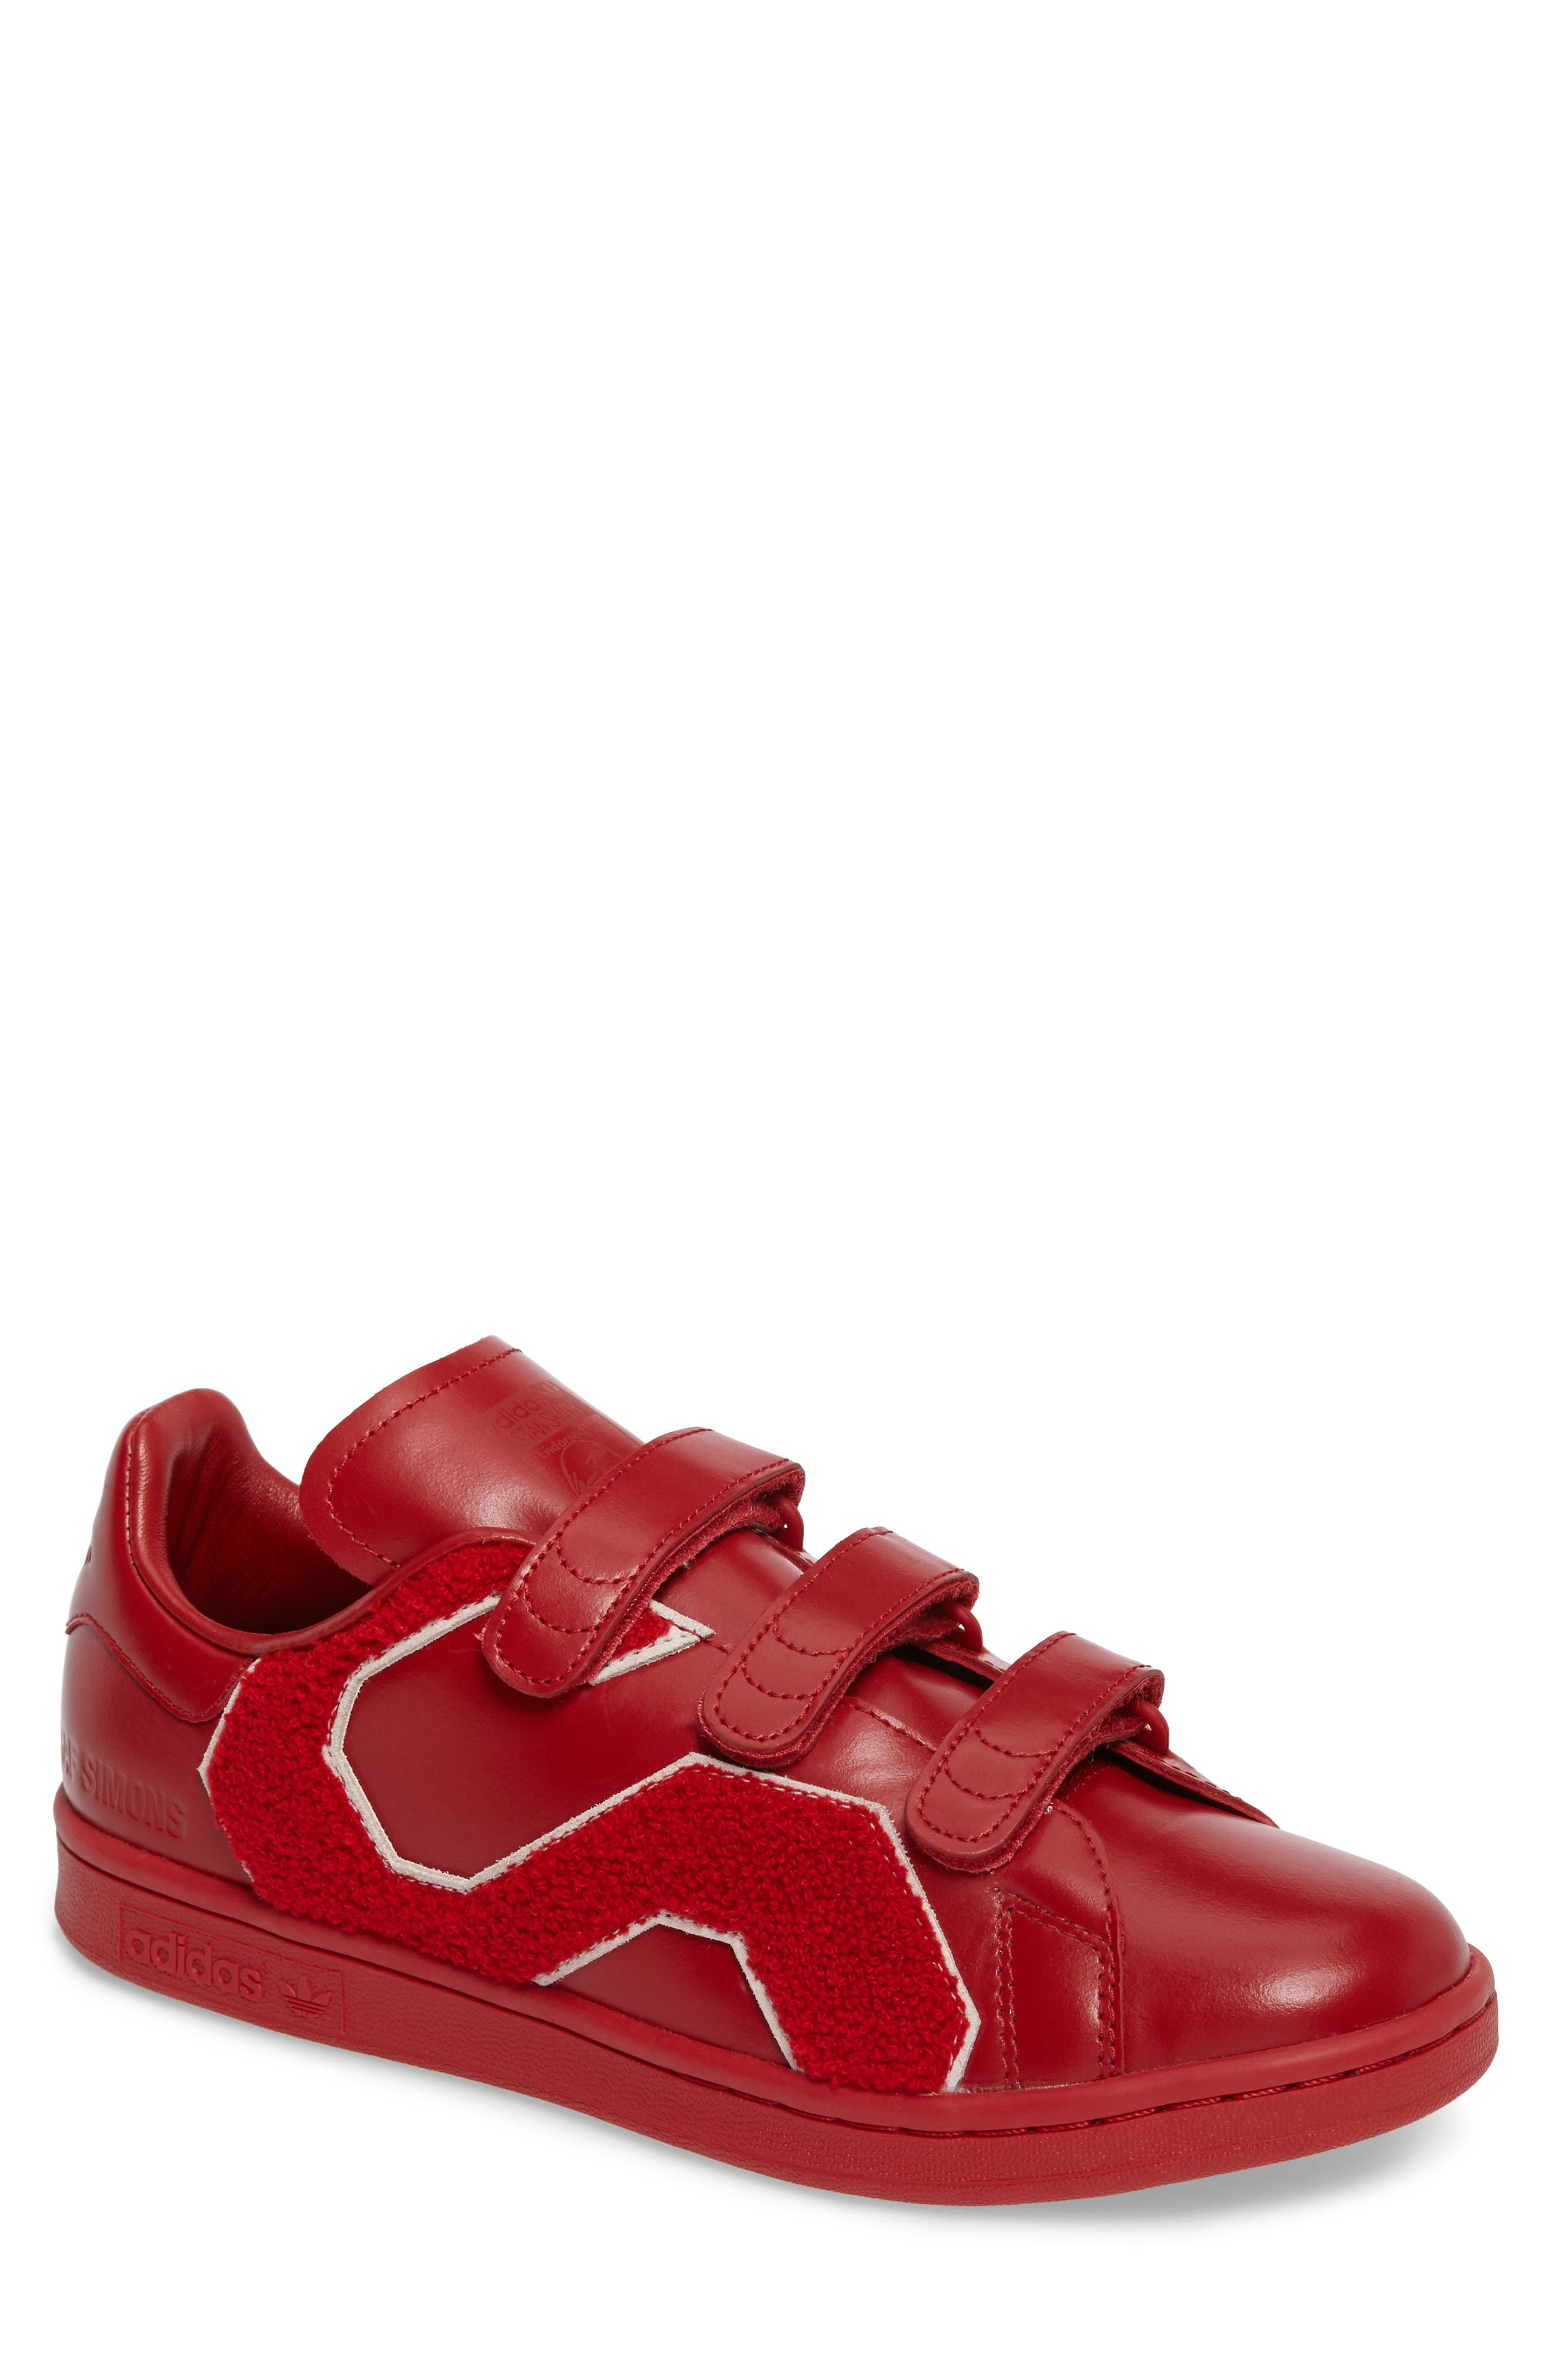 adidas by Raf Simons Stan Smith Sneaker,                             Main thumbnail 1, color,                             600